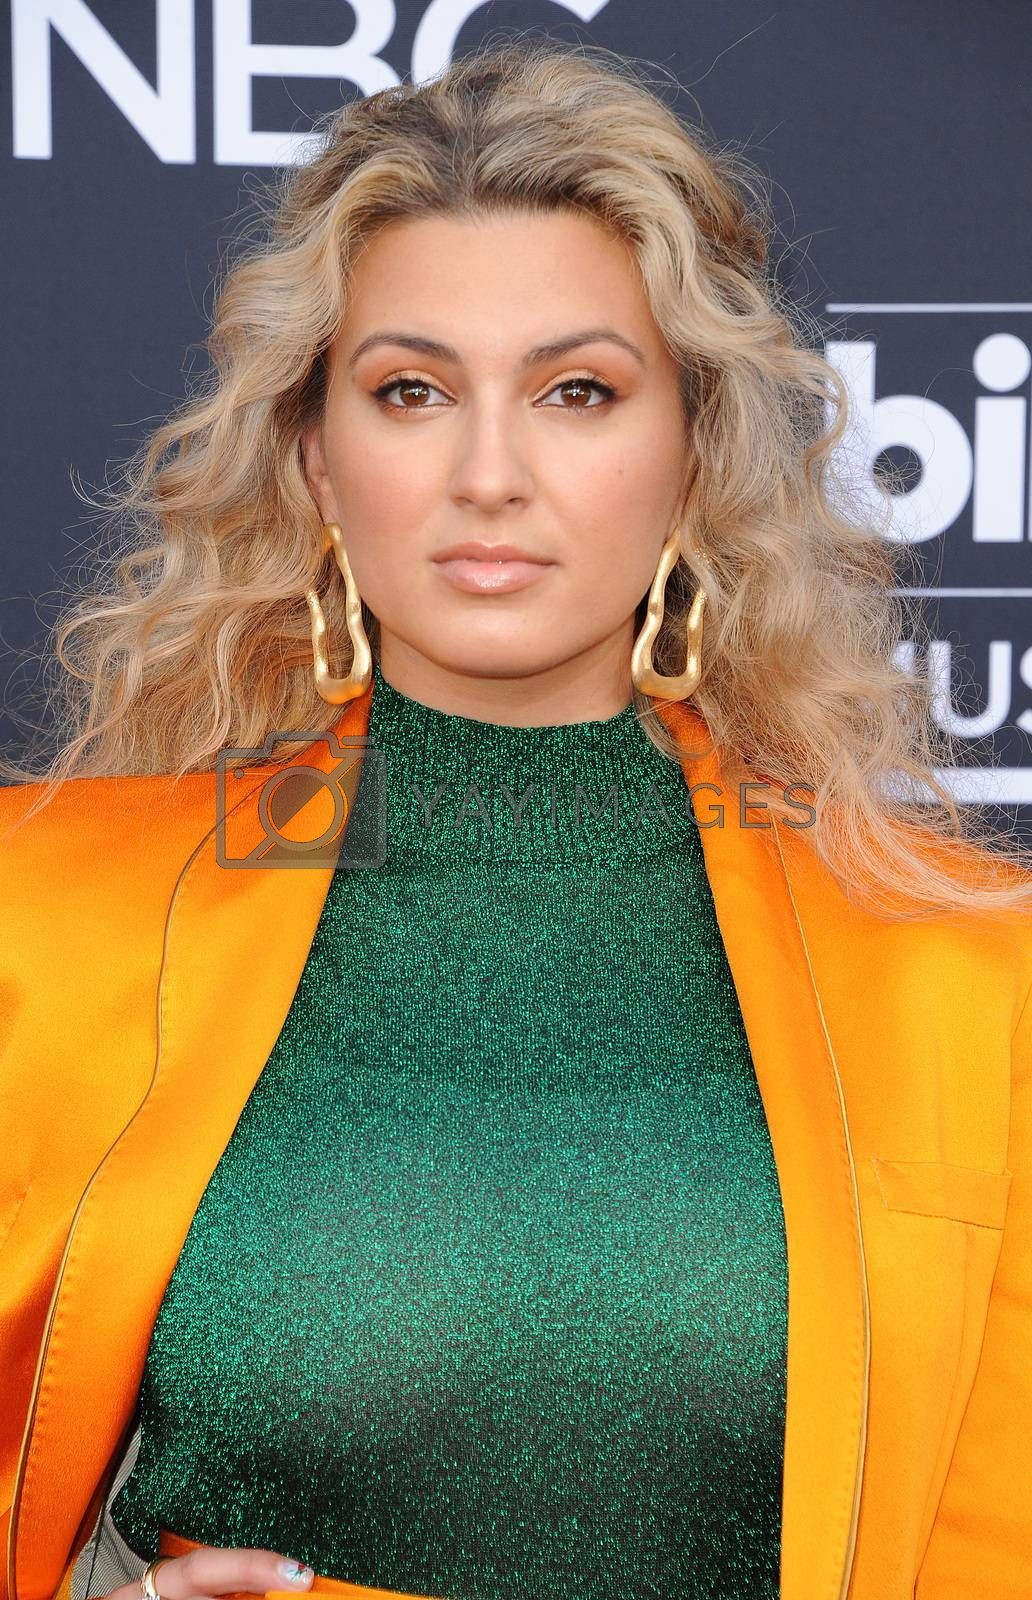 Tori Kelly at the 2019 Billboard Music Awards held at the MGM Grand Garden Arena in Las Vegas, USA on May 1, 2019.